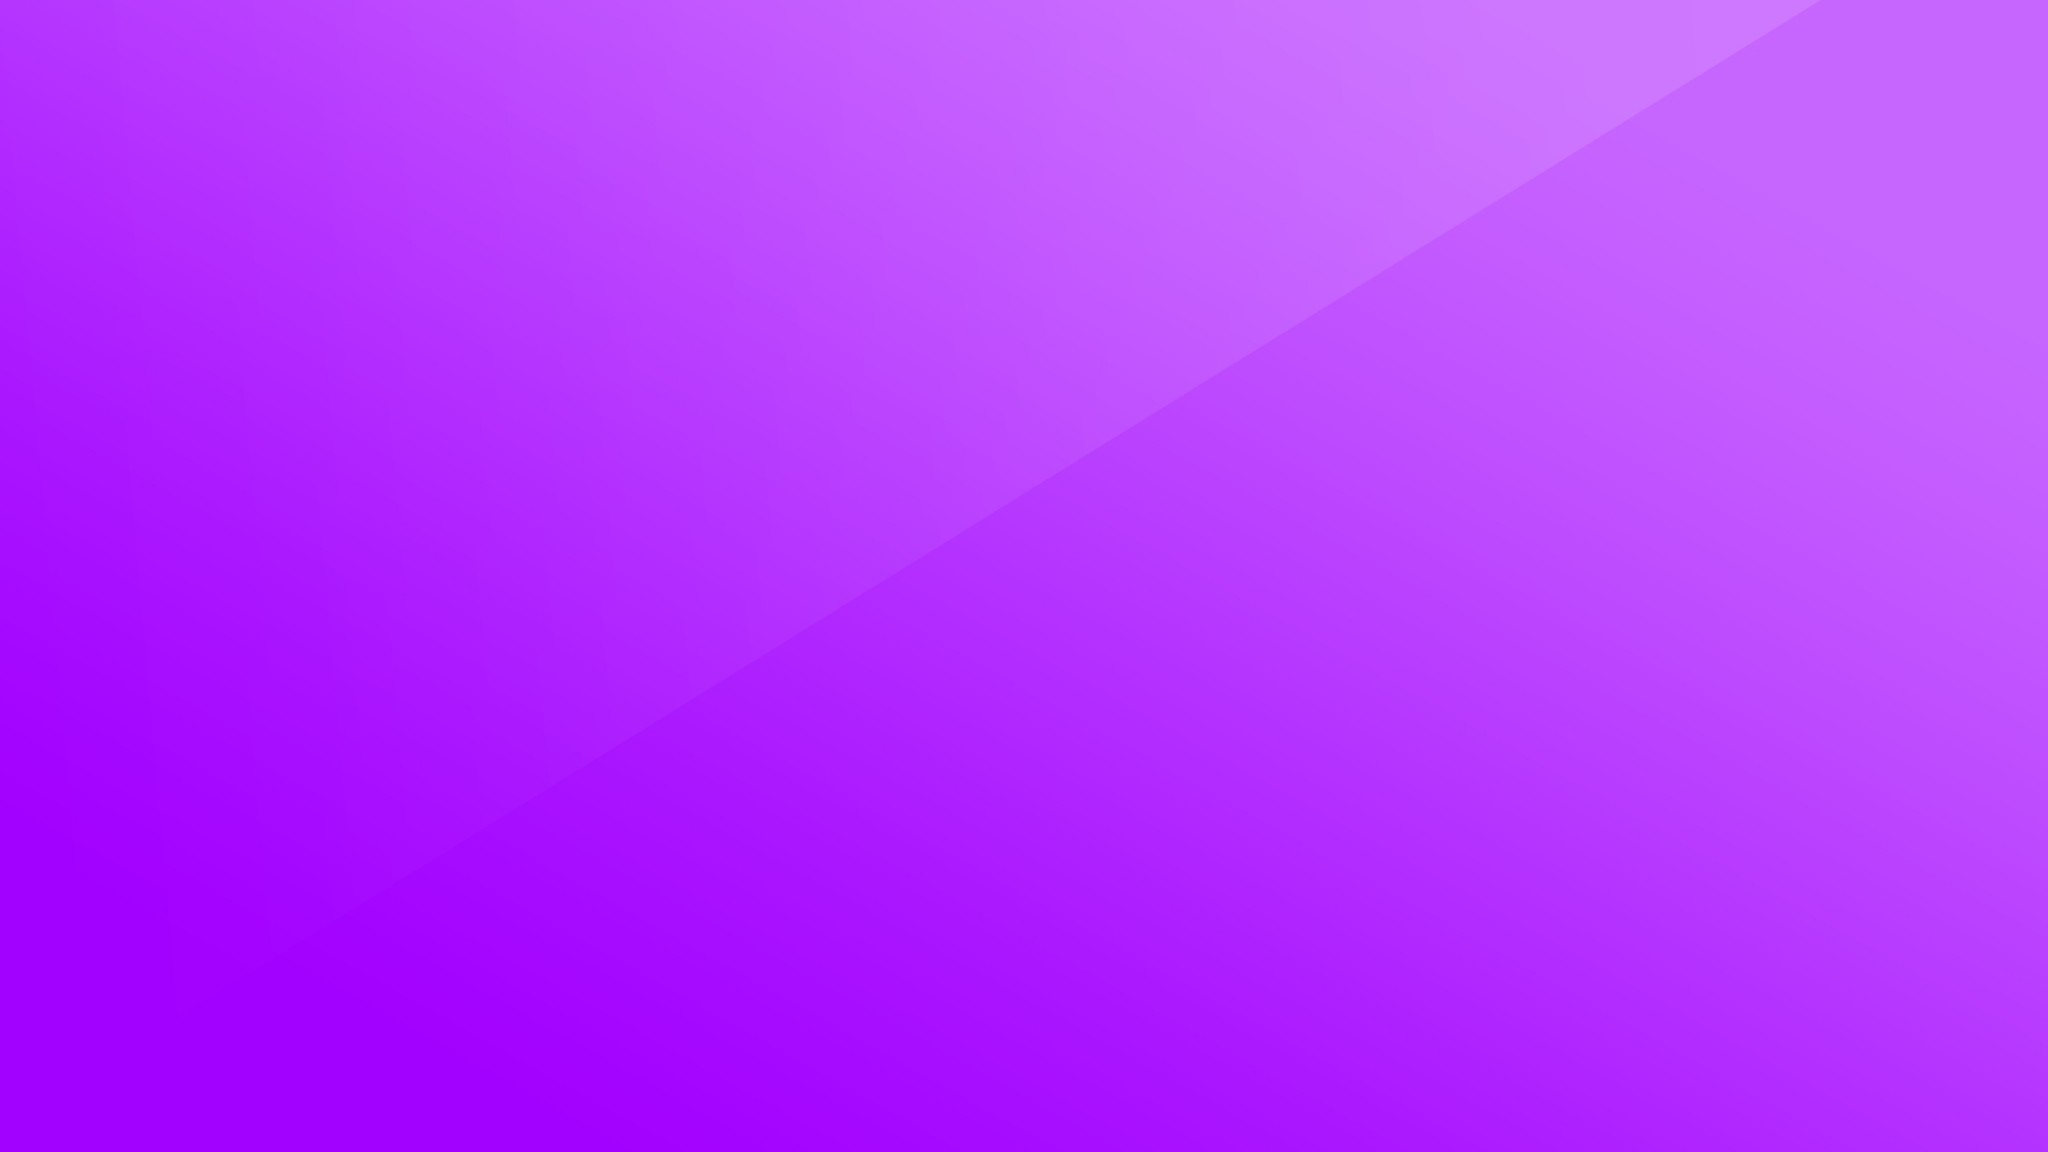 Preview wallpaper purple, light, line 2048×1152